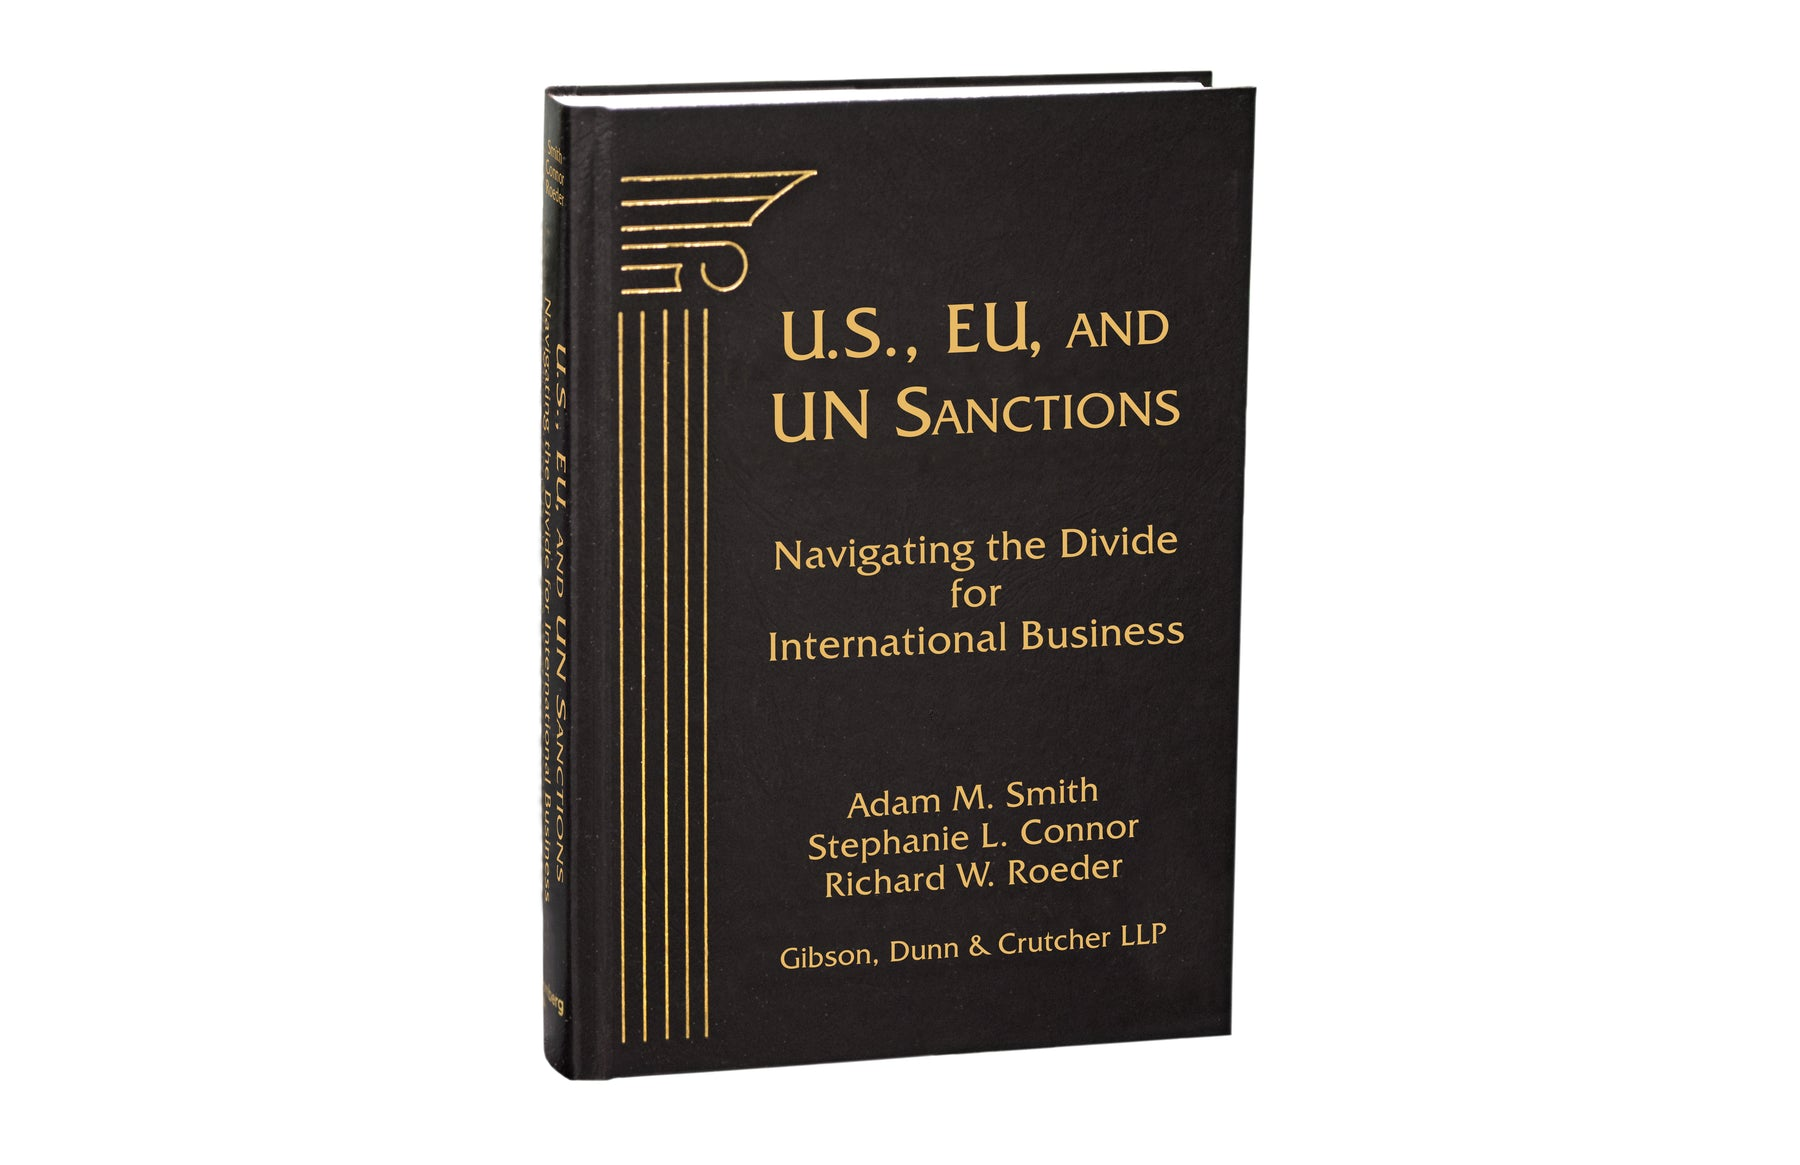 U.S., EU, and UN Sanctions: Navigating the Divide for International Business